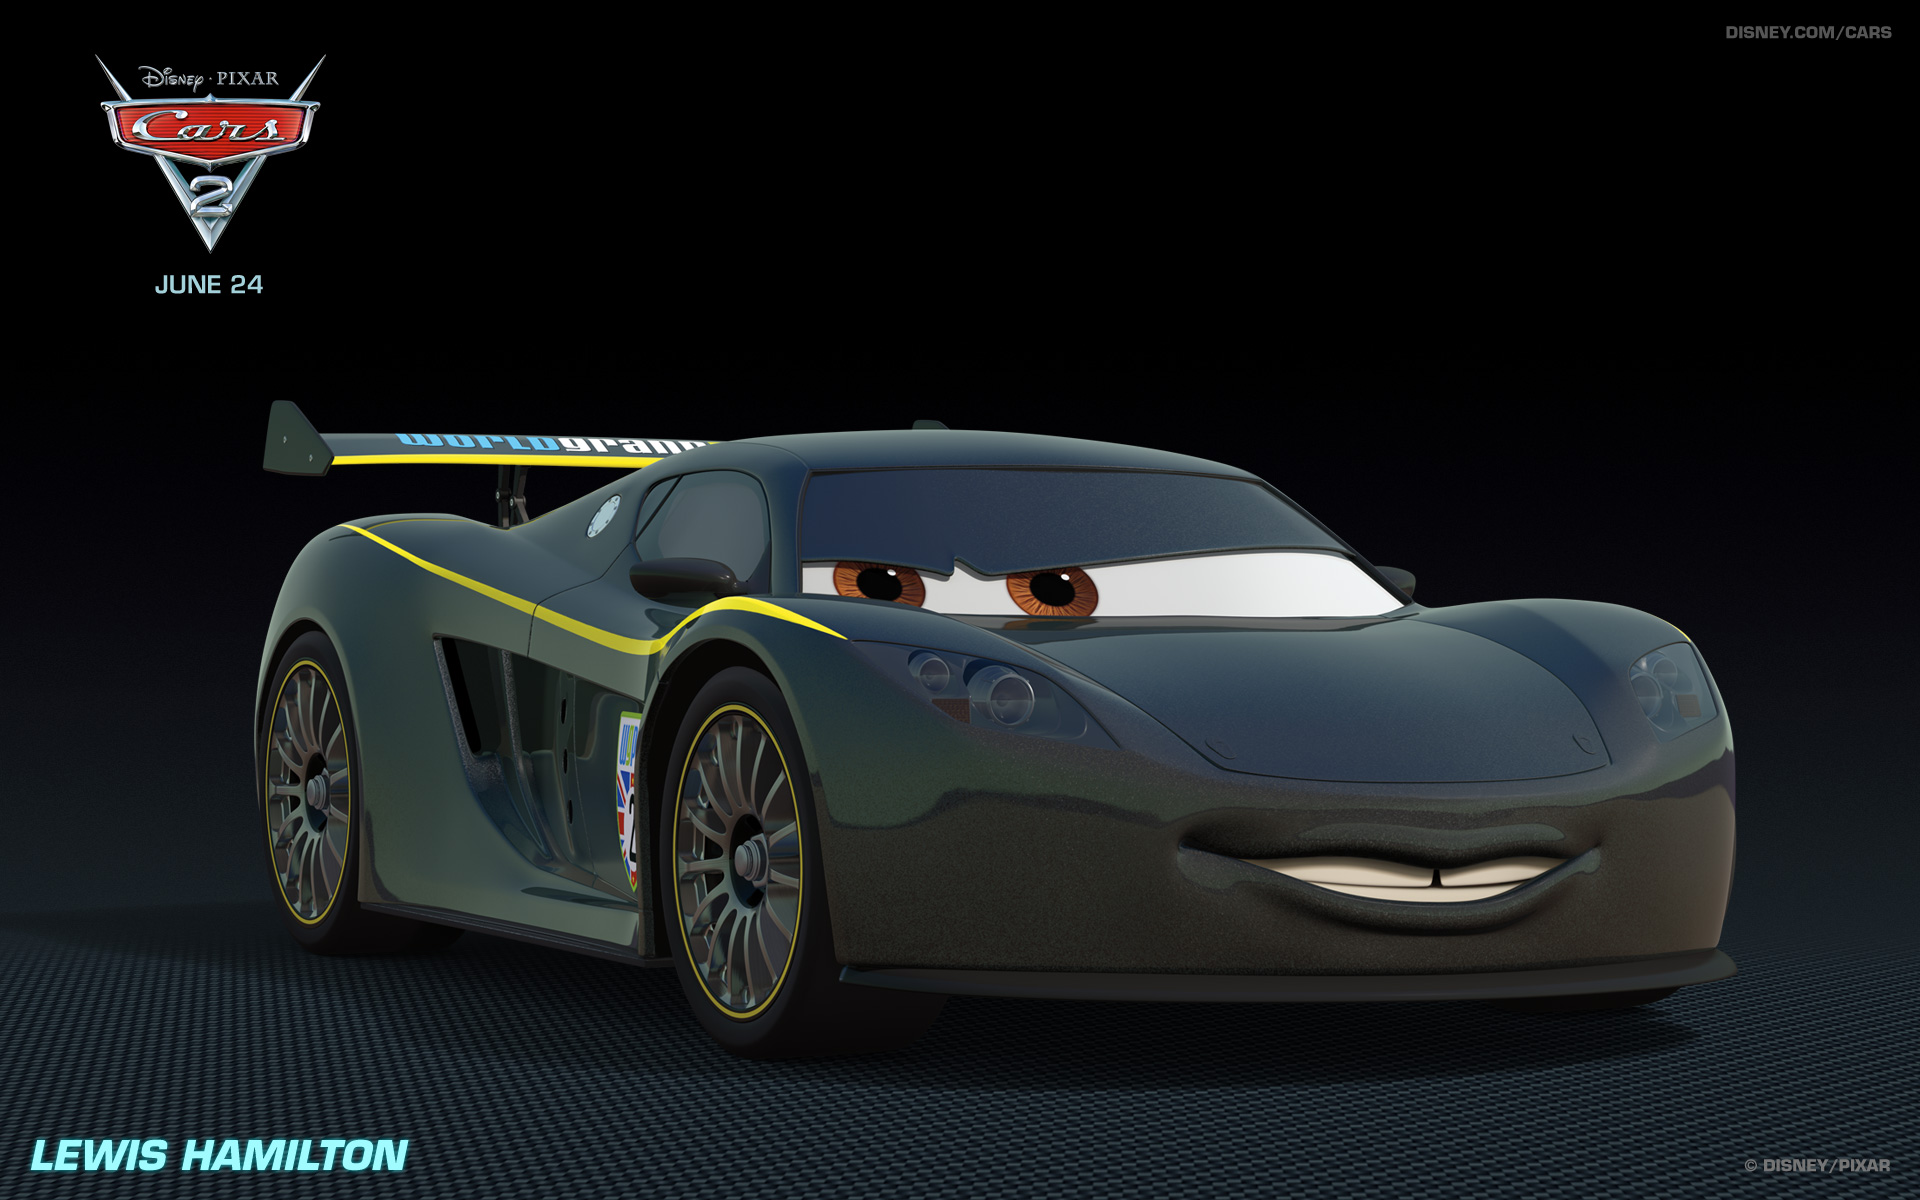 Lewis Hamilton Car  Pixar Wiki  Fandom powered by Wikia